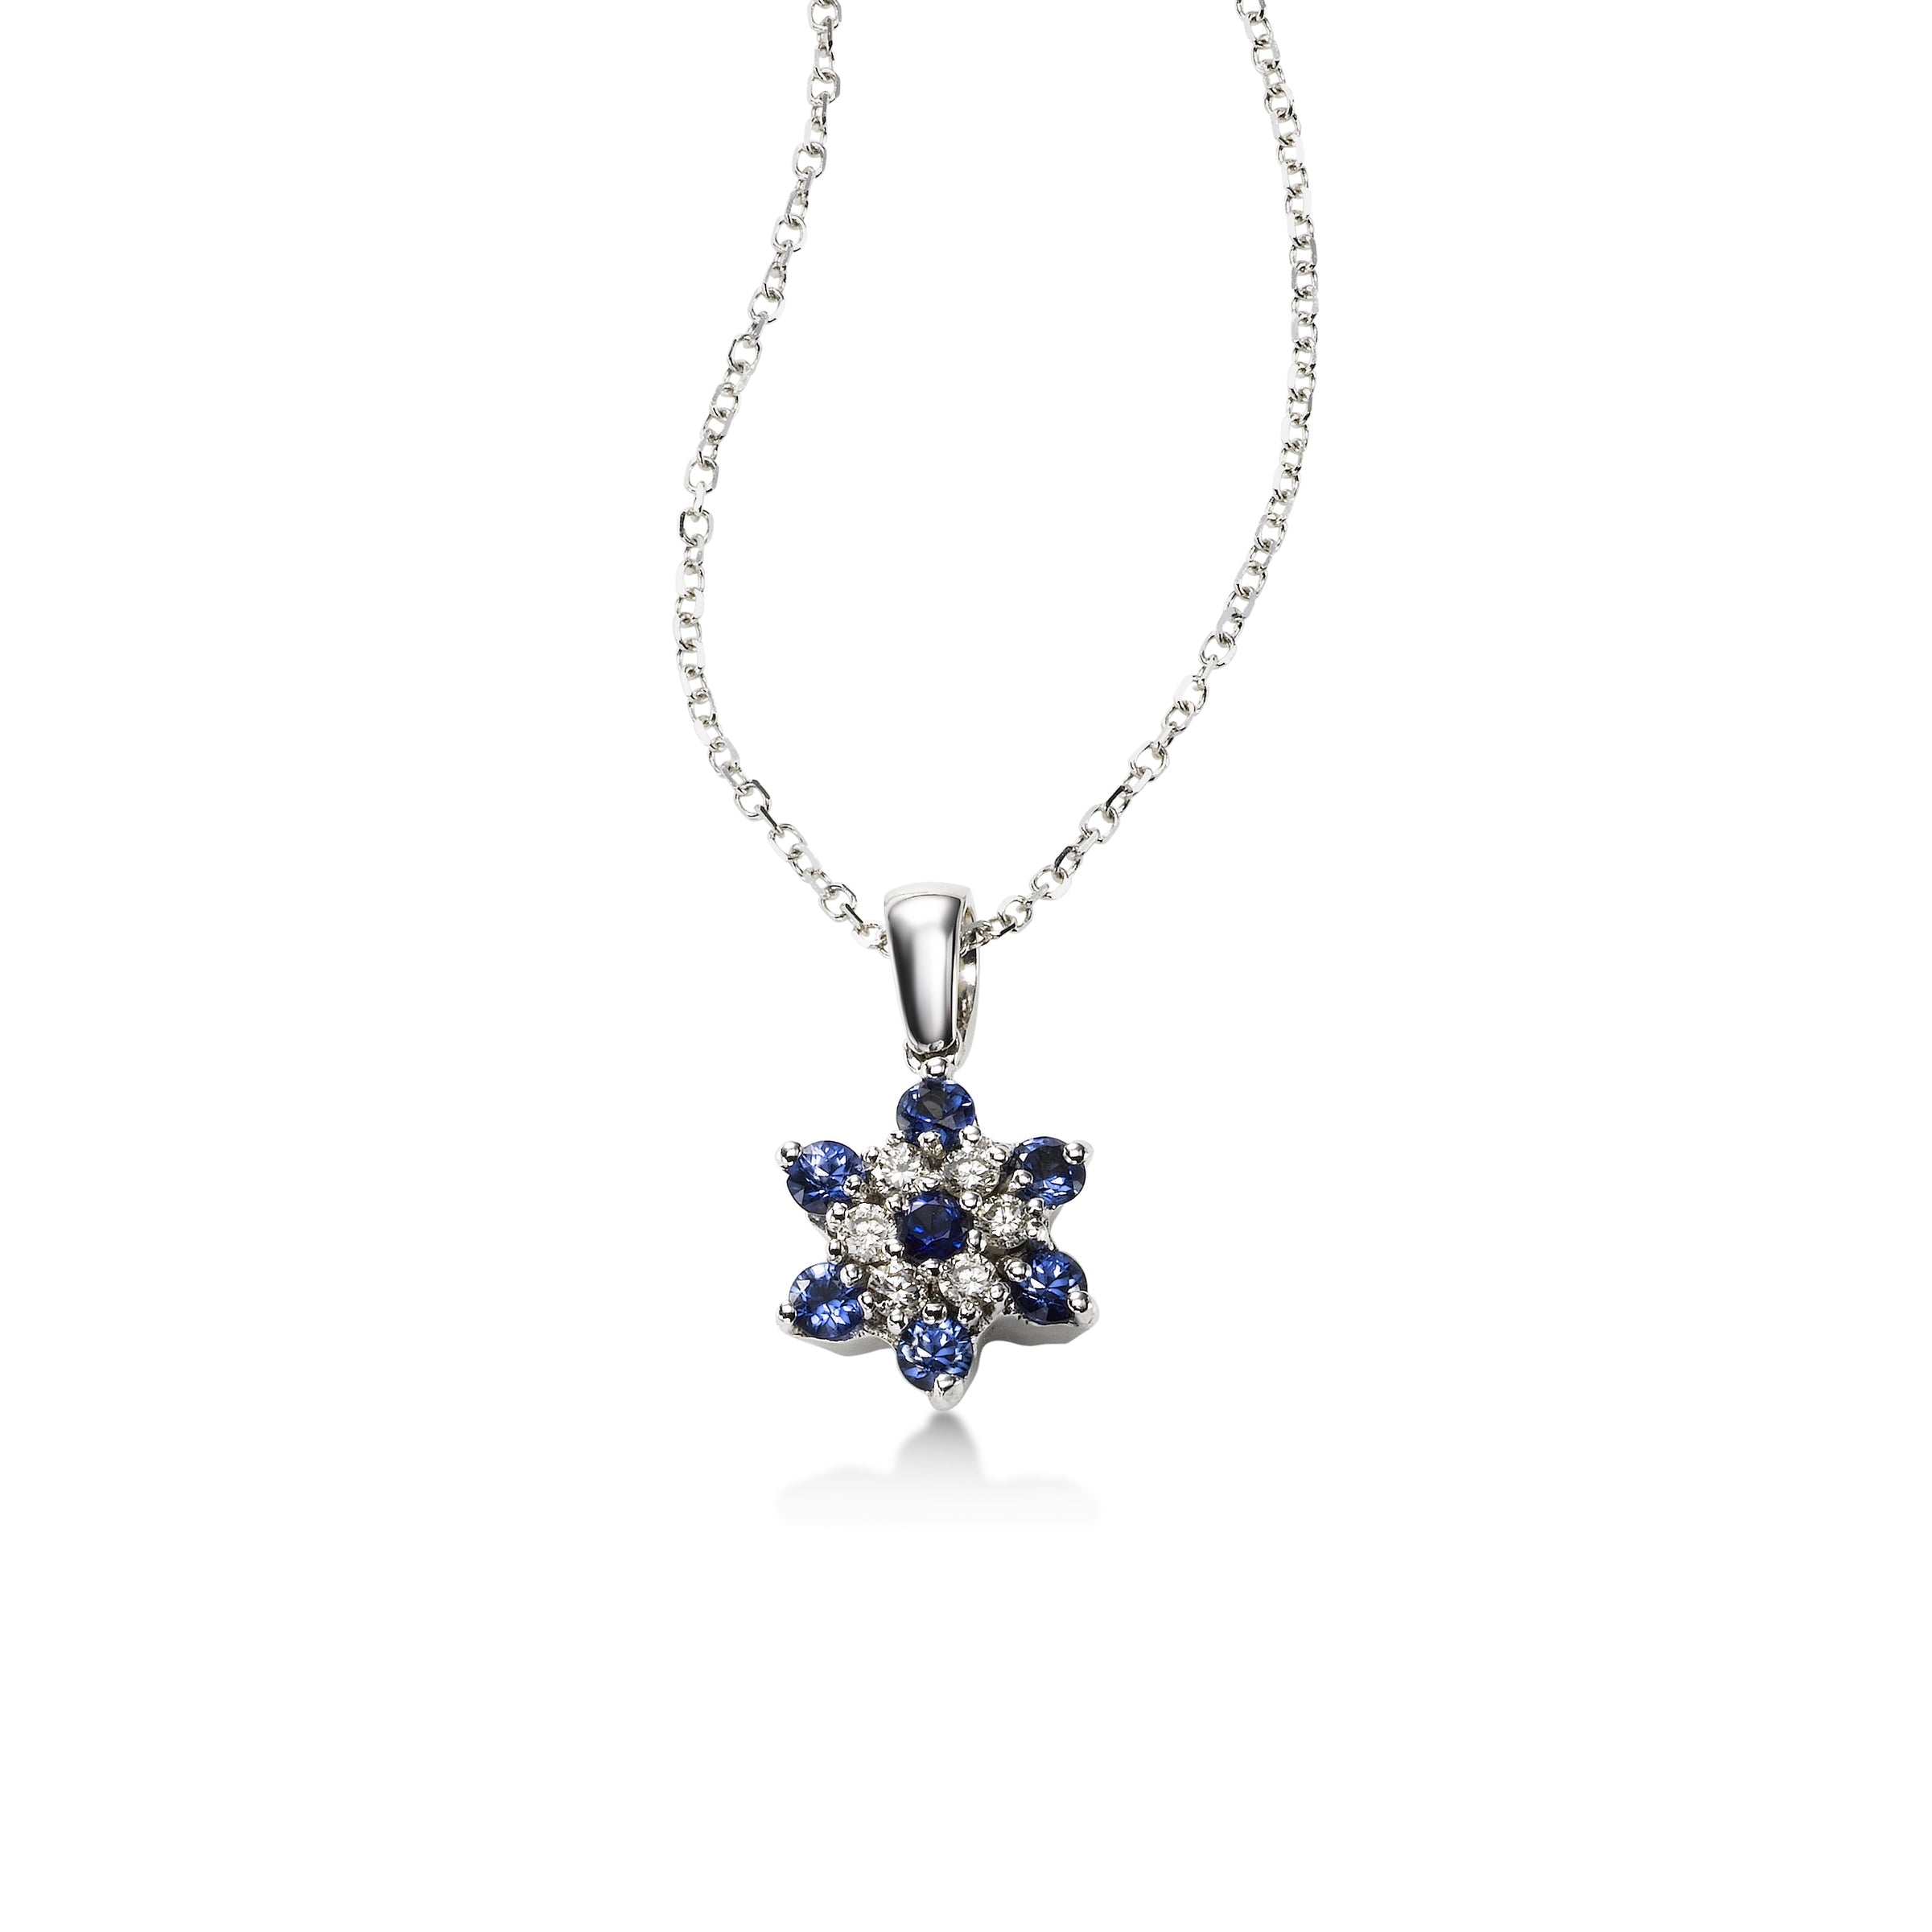 Delicate Sapphire and Diamond Flower Pendant, 14K White Gold